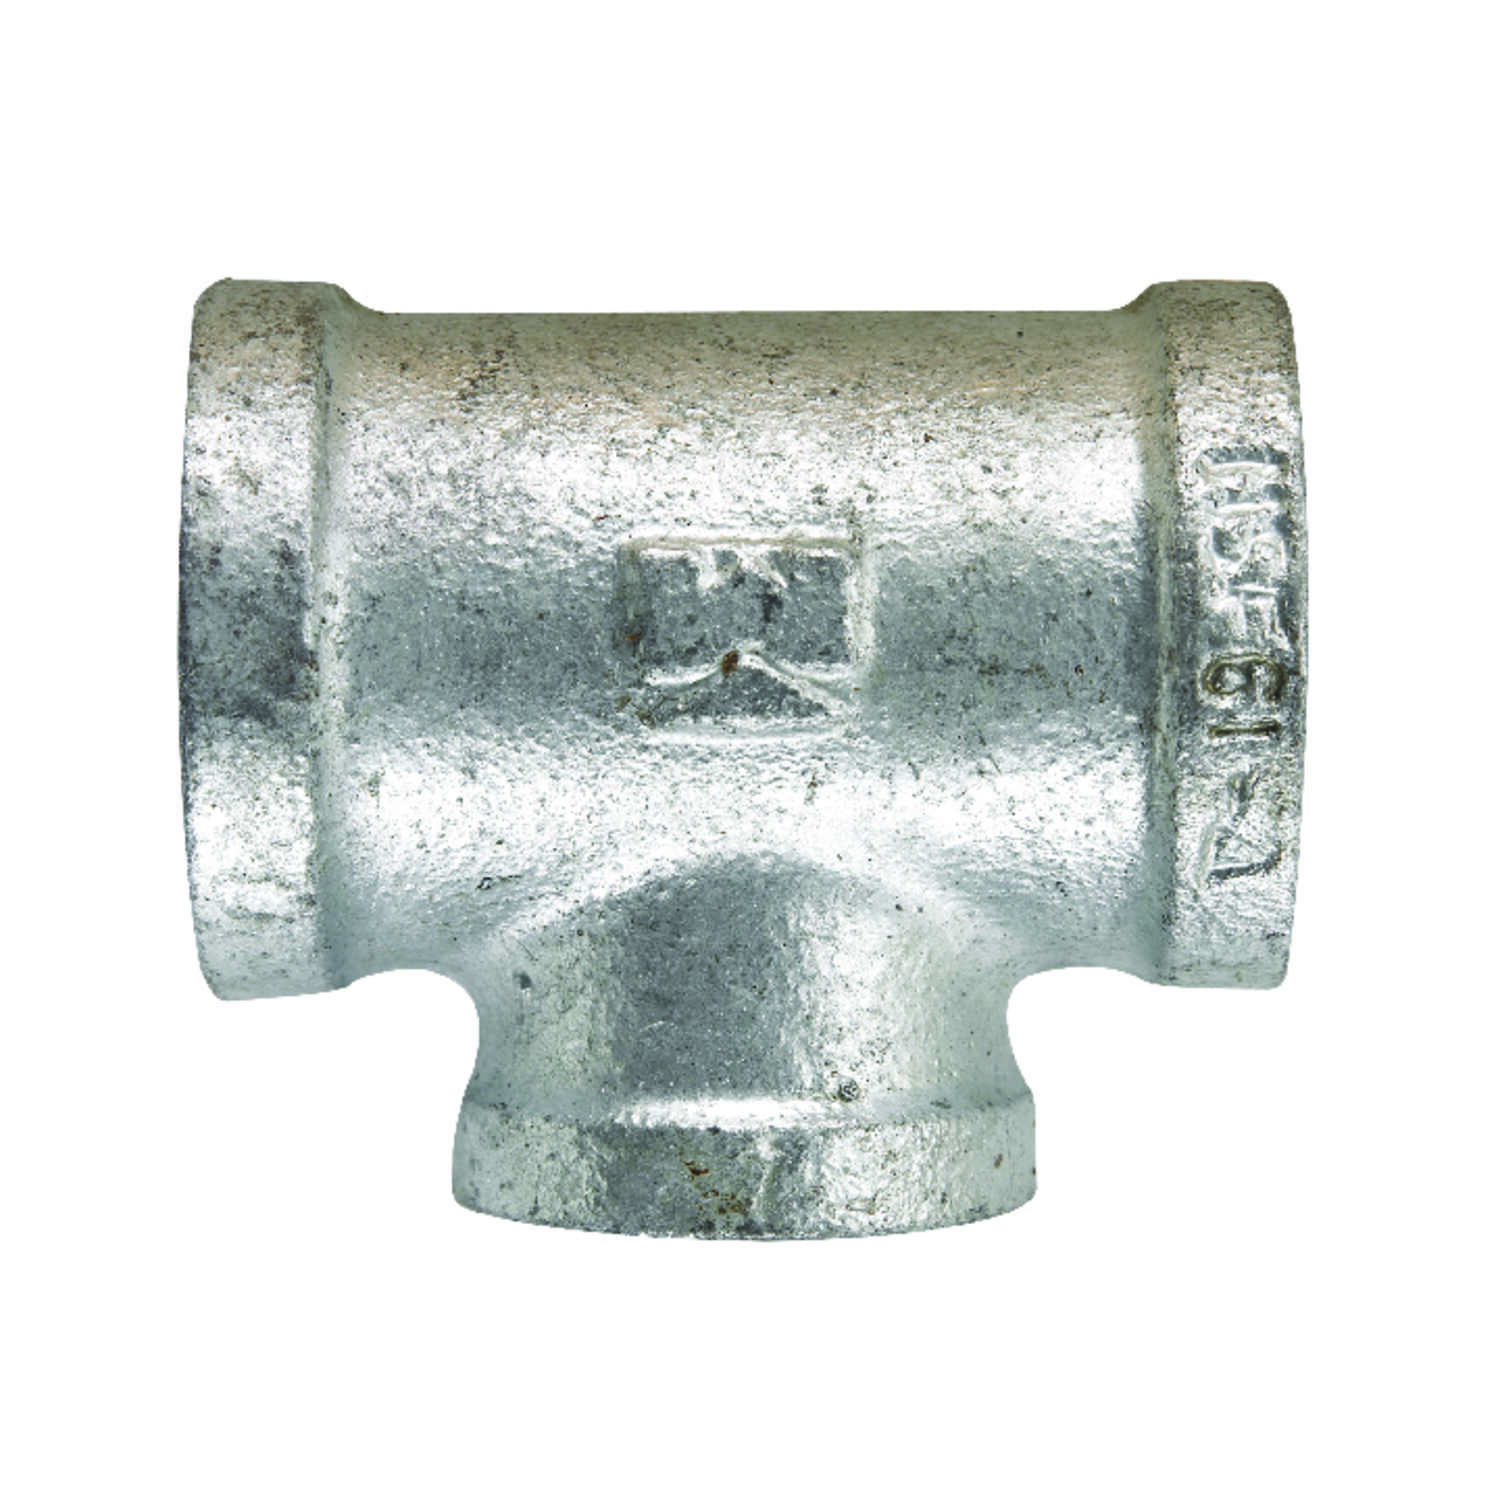 B & K  1/2 in. FPT   x 1/2 in. Dia. FPT  Galvanized  Malleable Iron  Reducing Tee